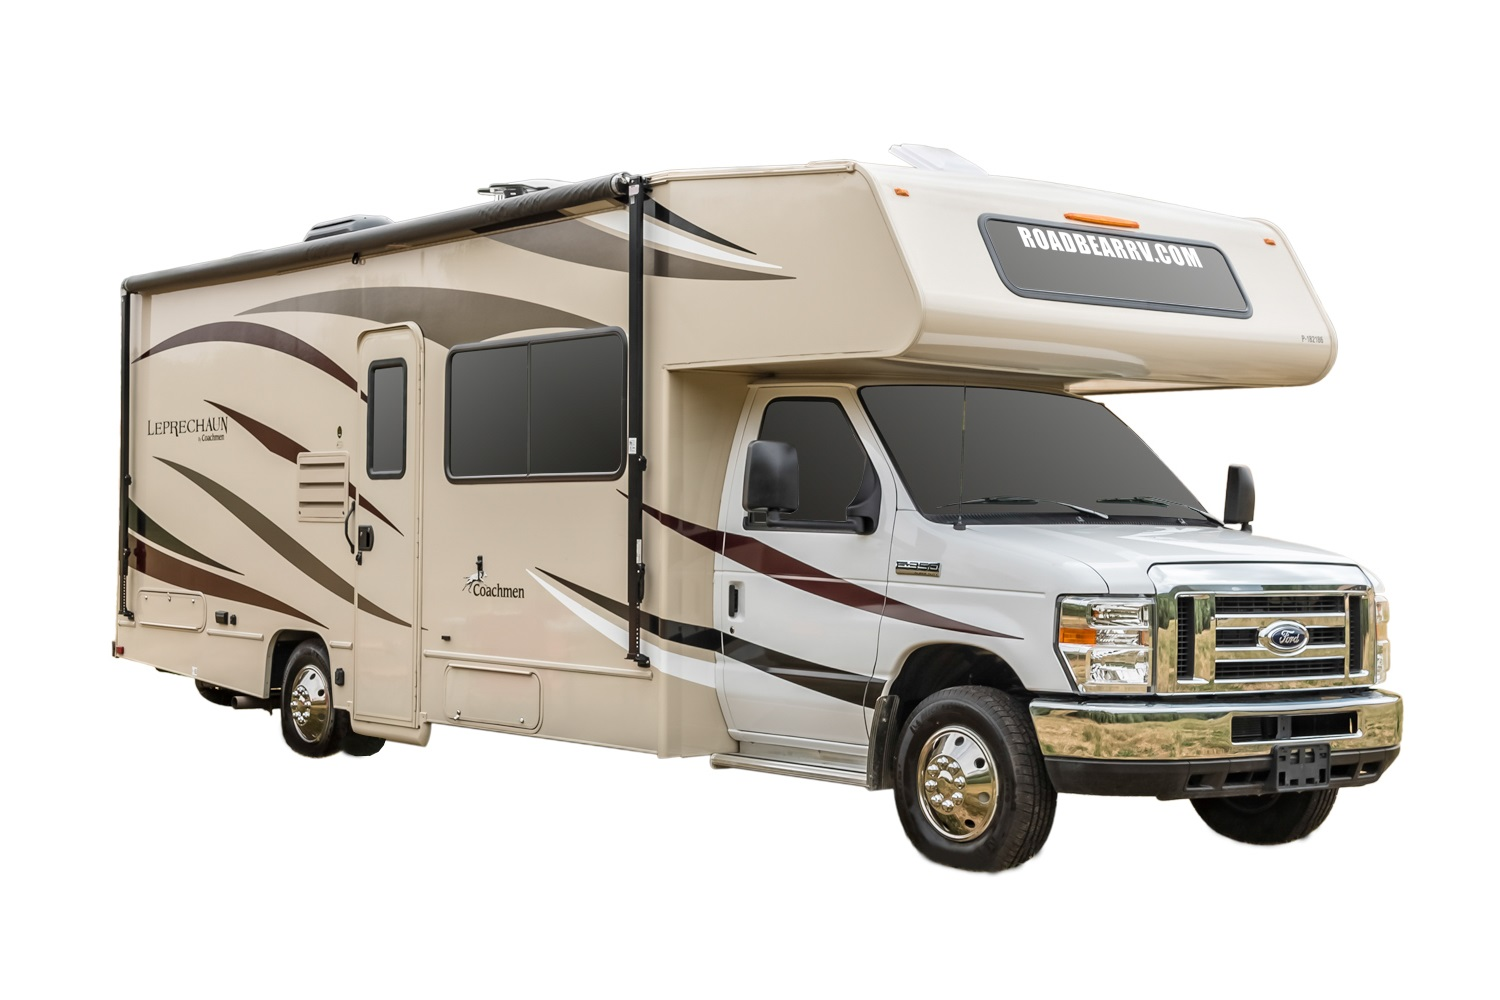 25-27 ft Class C Motorhome with slide out